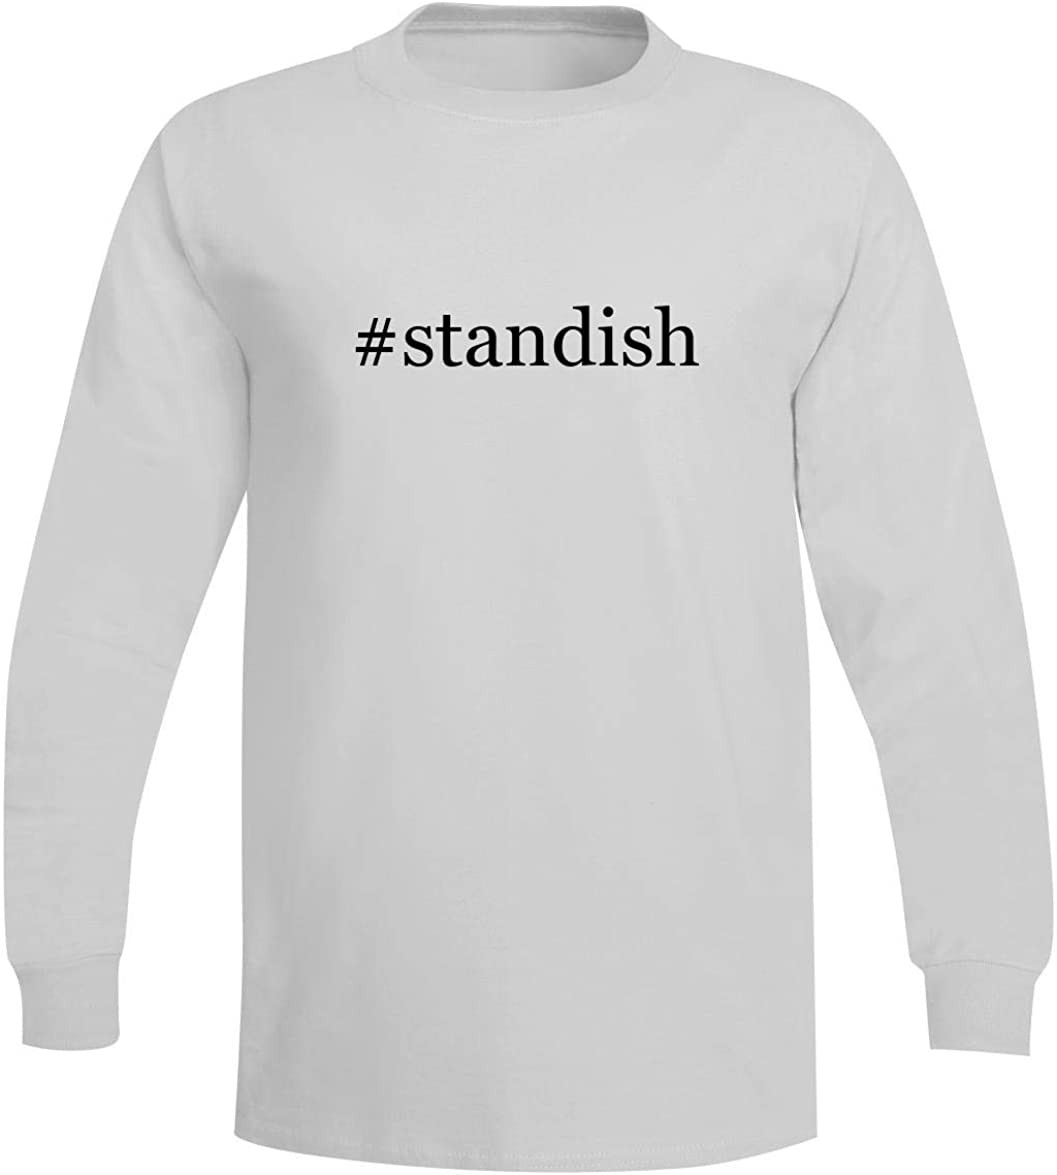 The Town Butler #Standish - A Soft & Comfortable Hashtag Men's Long Sleeve T-Shirt